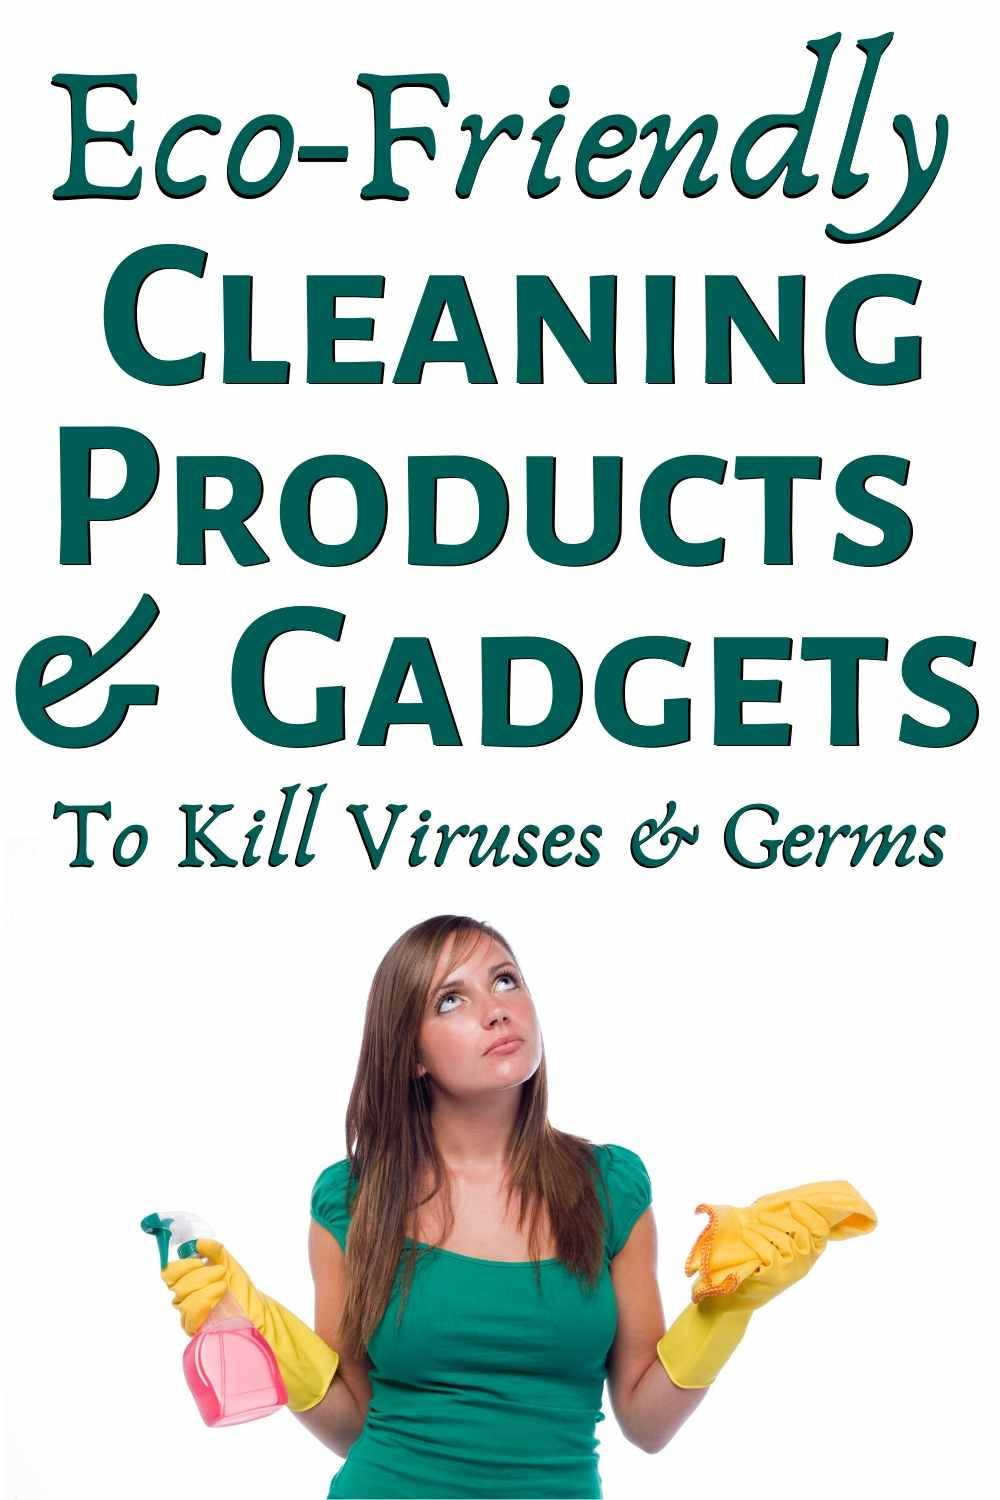 Eco-Friendly Cleaning Products And Gadgets To Kill Viruses And Germs